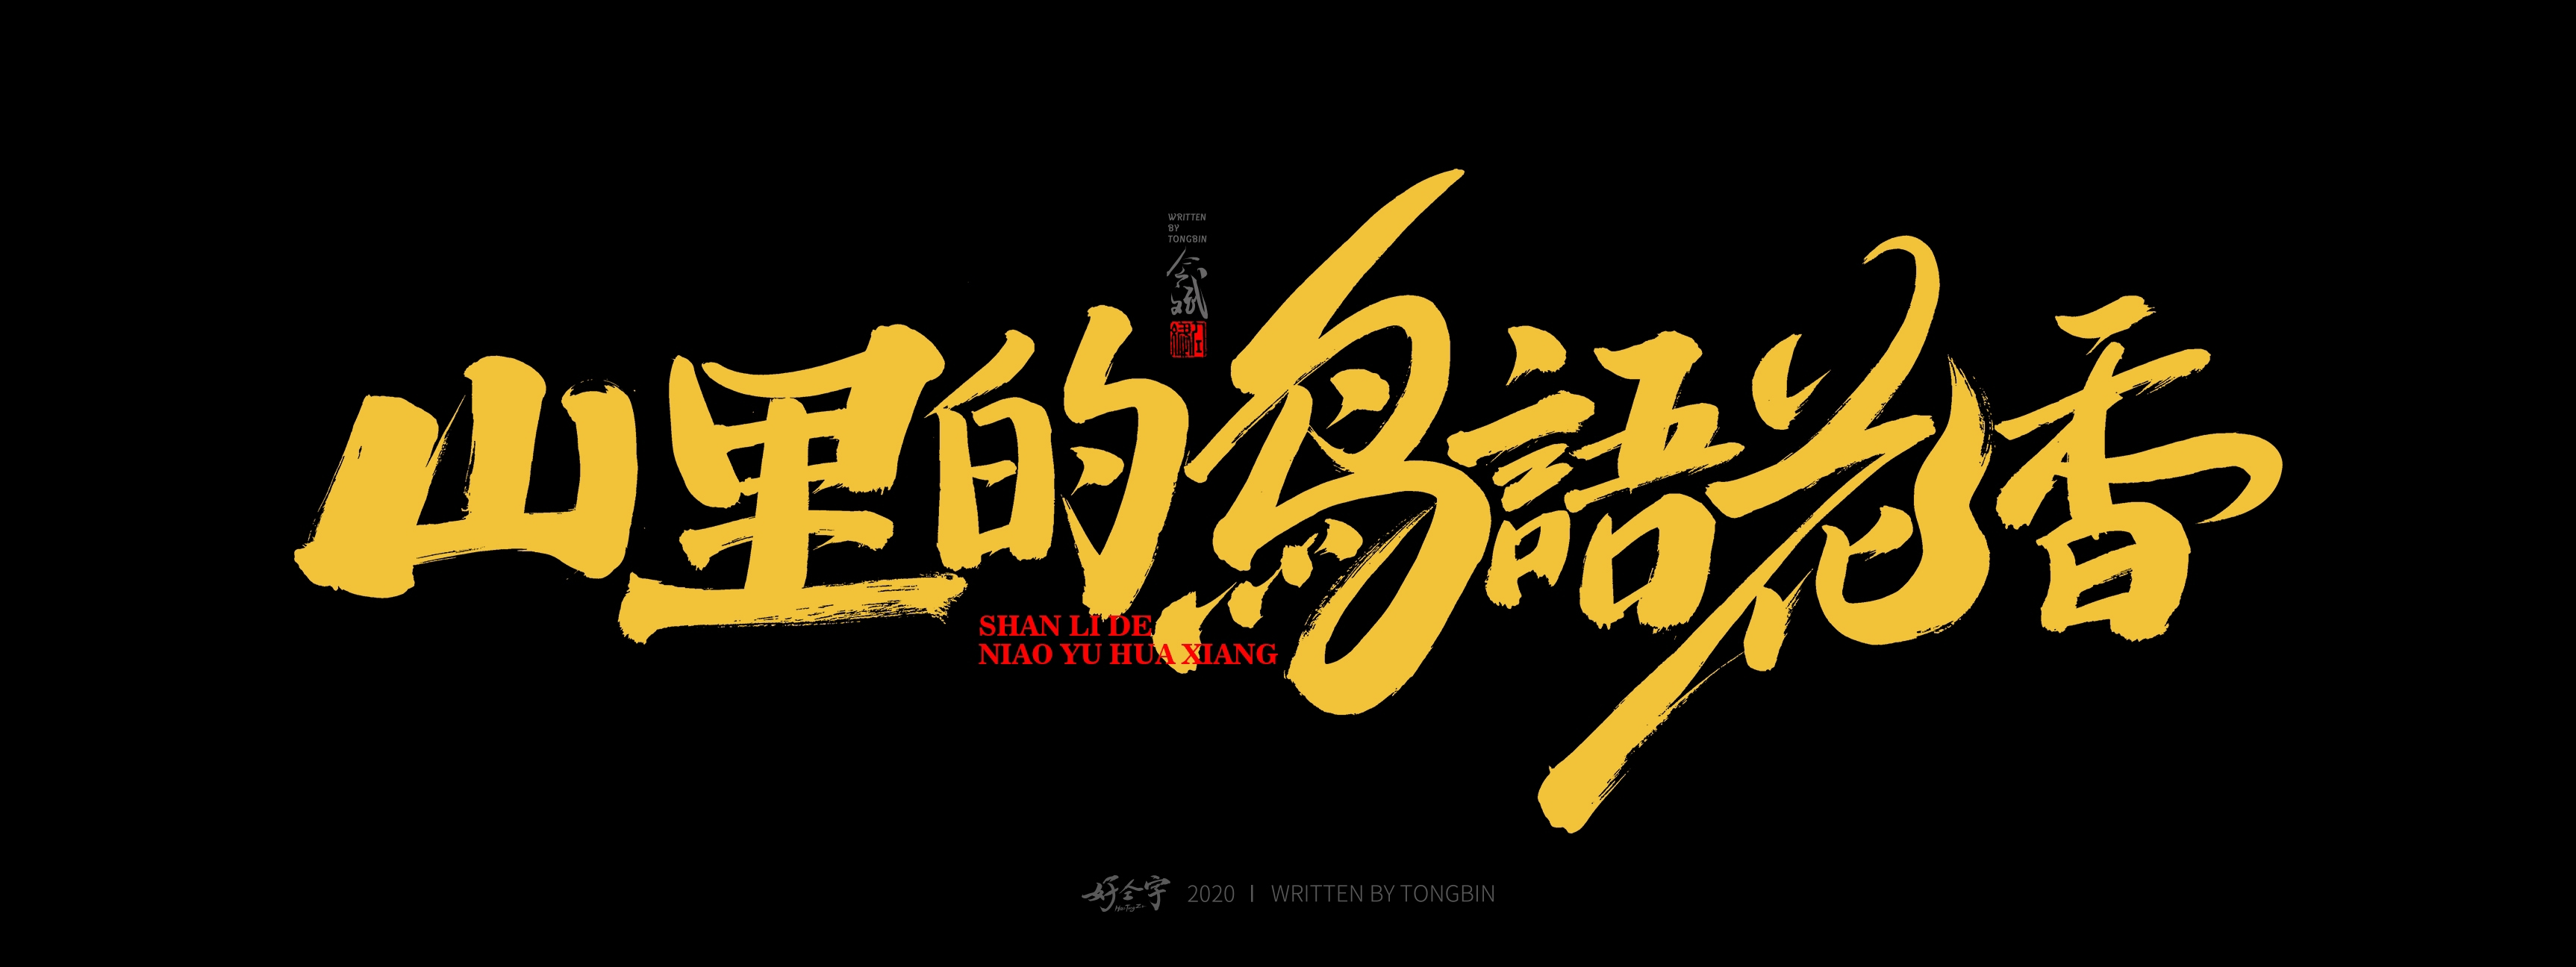 7P Chinese font design collection inspiration #.259